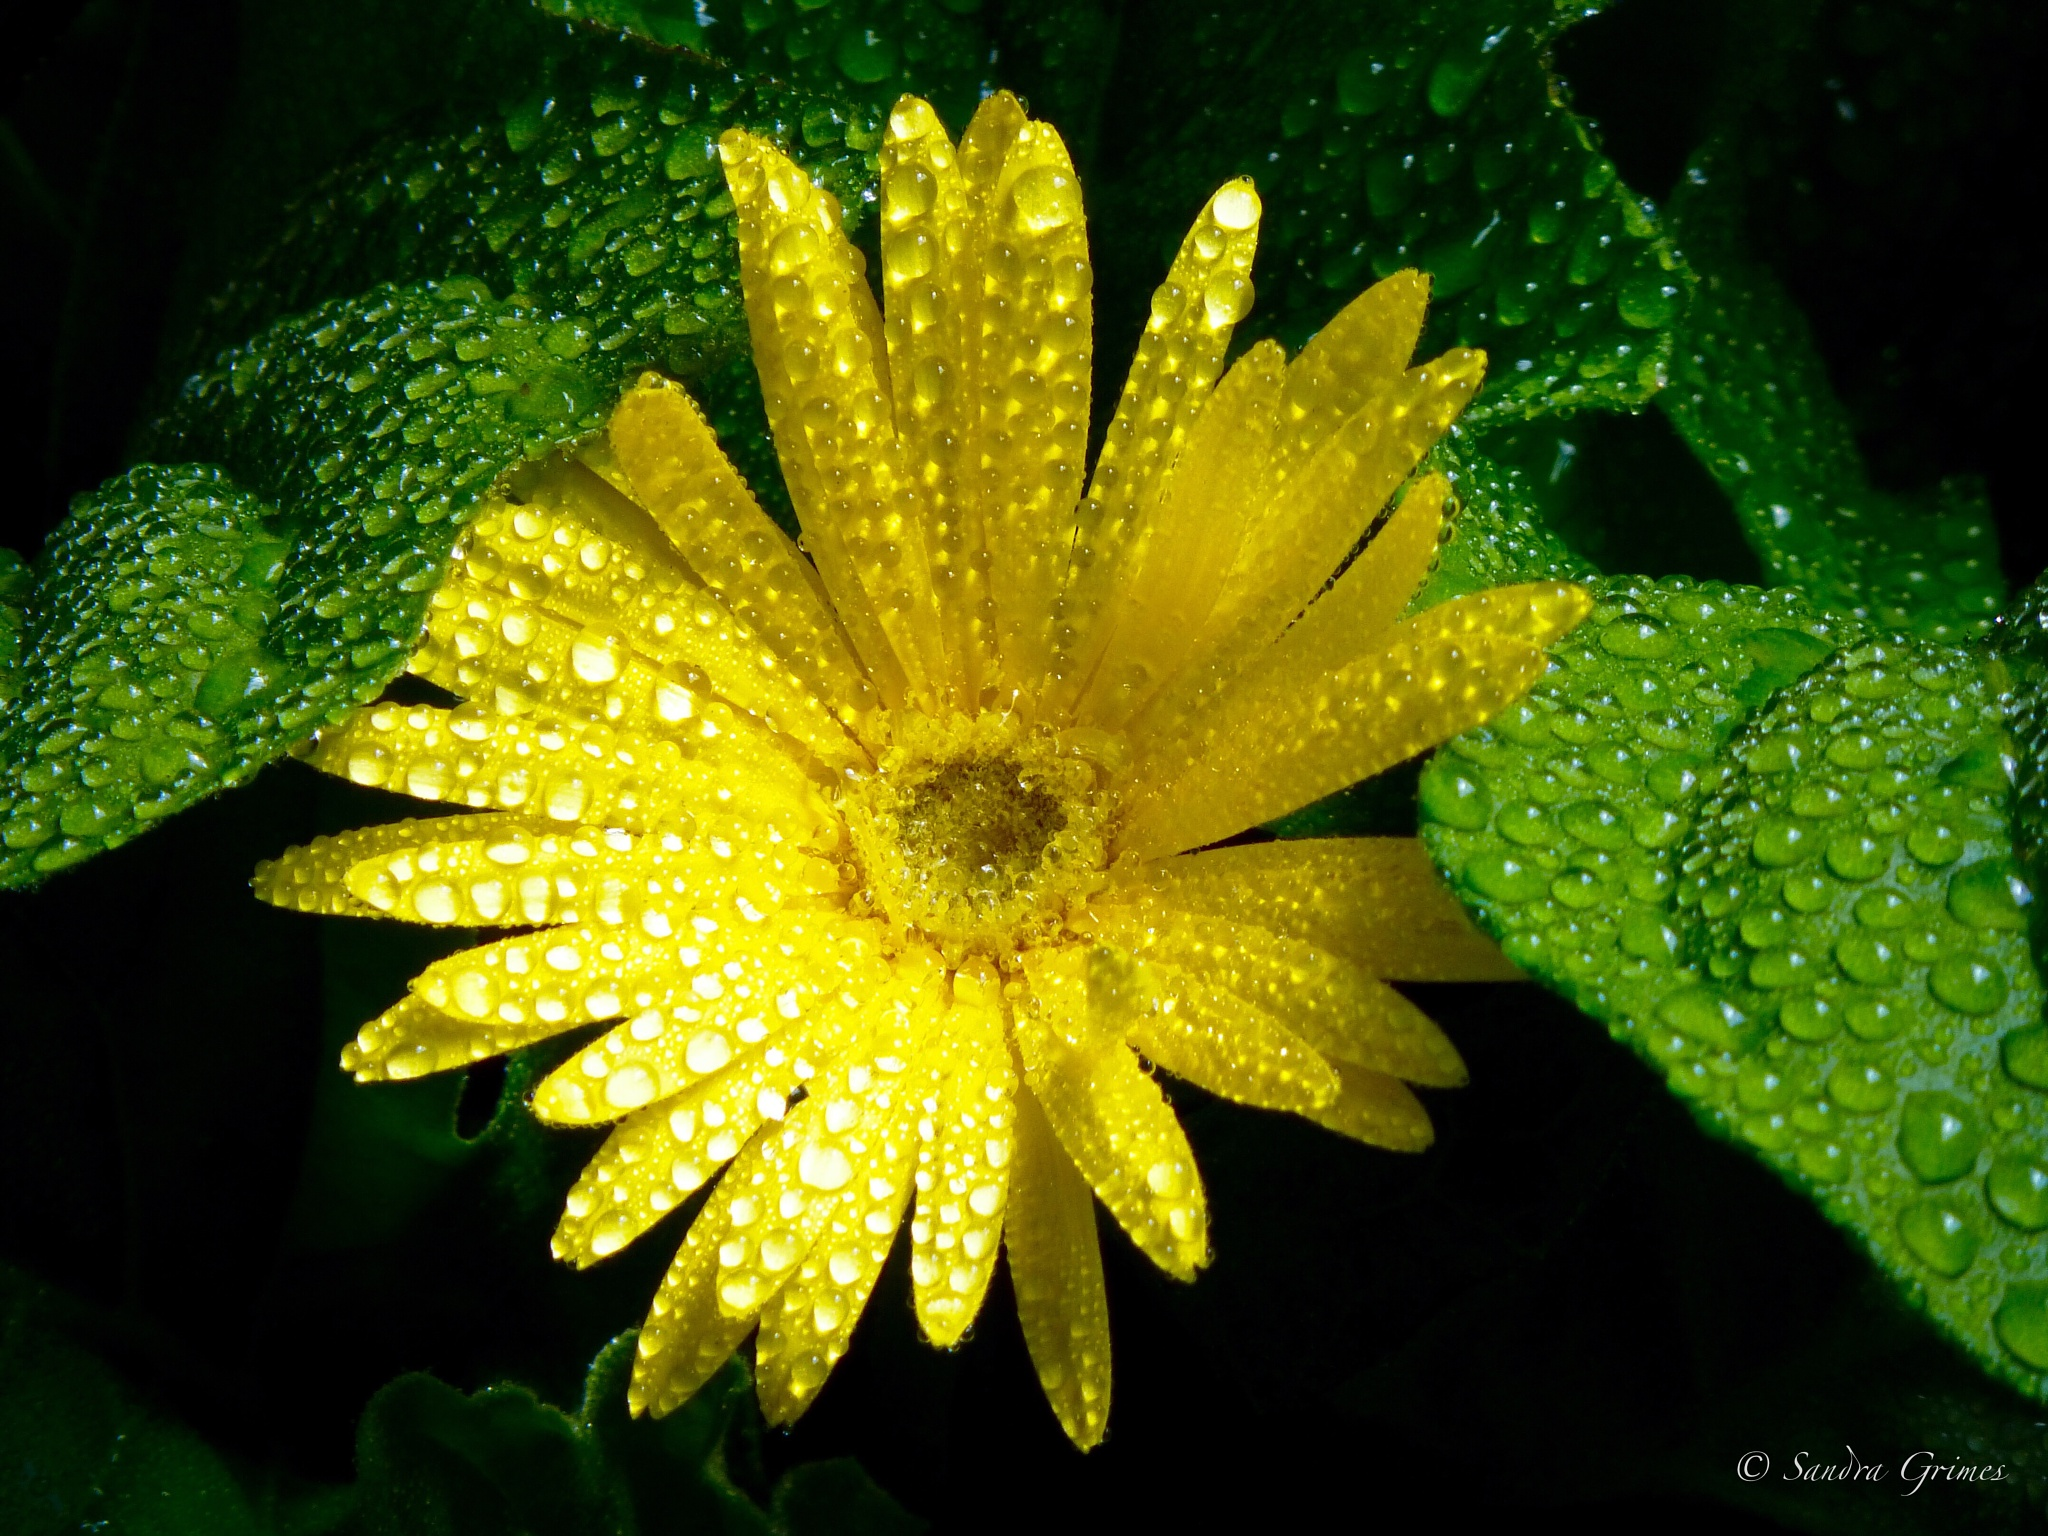 Raindrops on Yellow Daisies by TrixieGirl5192